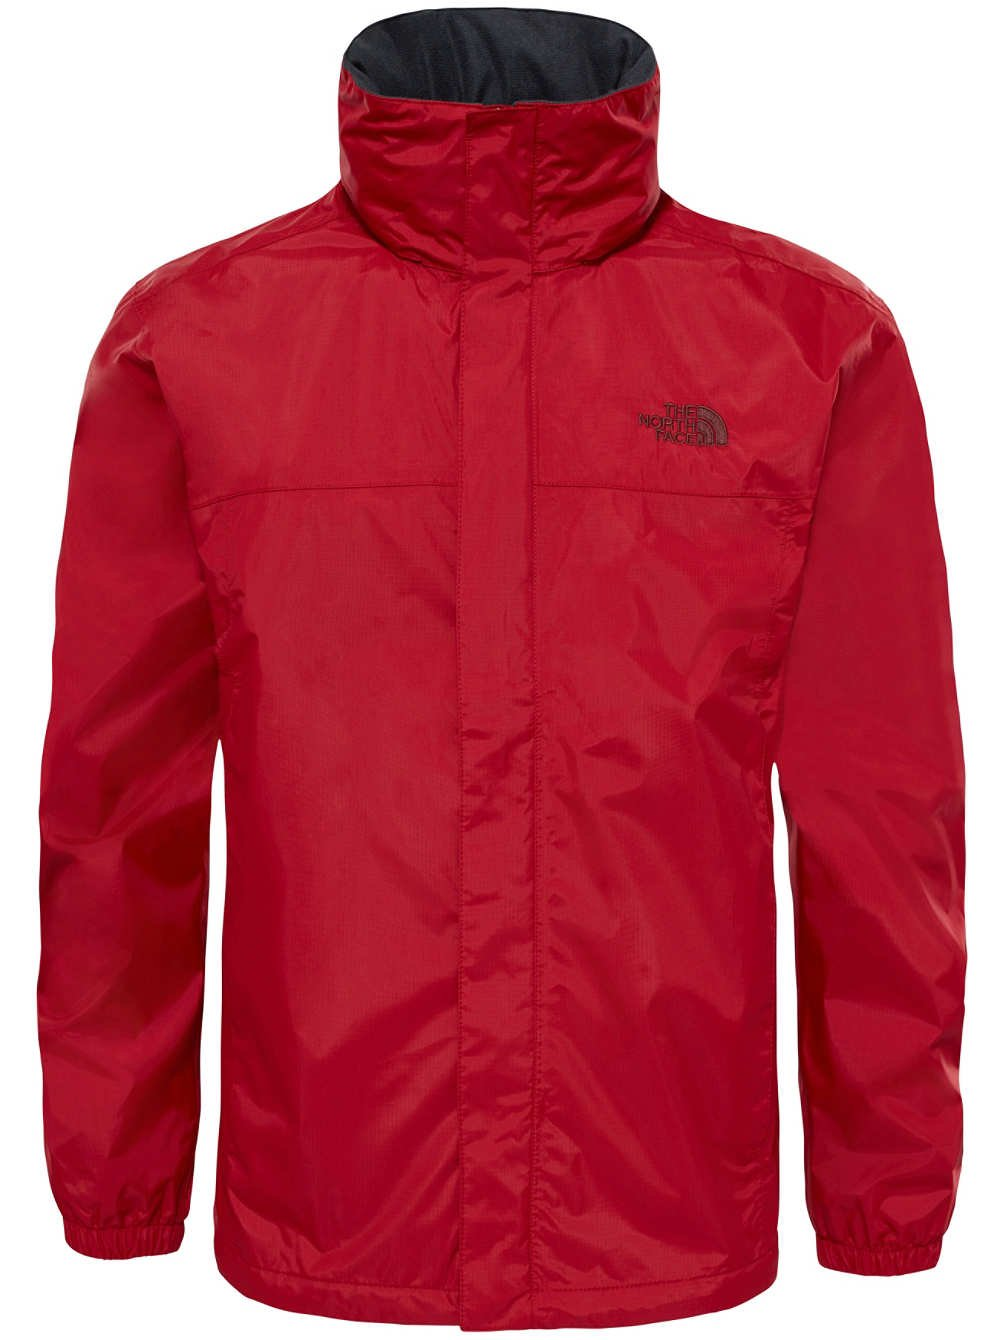 The North Face Resolve 2 メンズジャケット B01HQSY48M X-Large Cardinal Red/Sequoia Red Cardinal Red/Sequoia Red X-Large